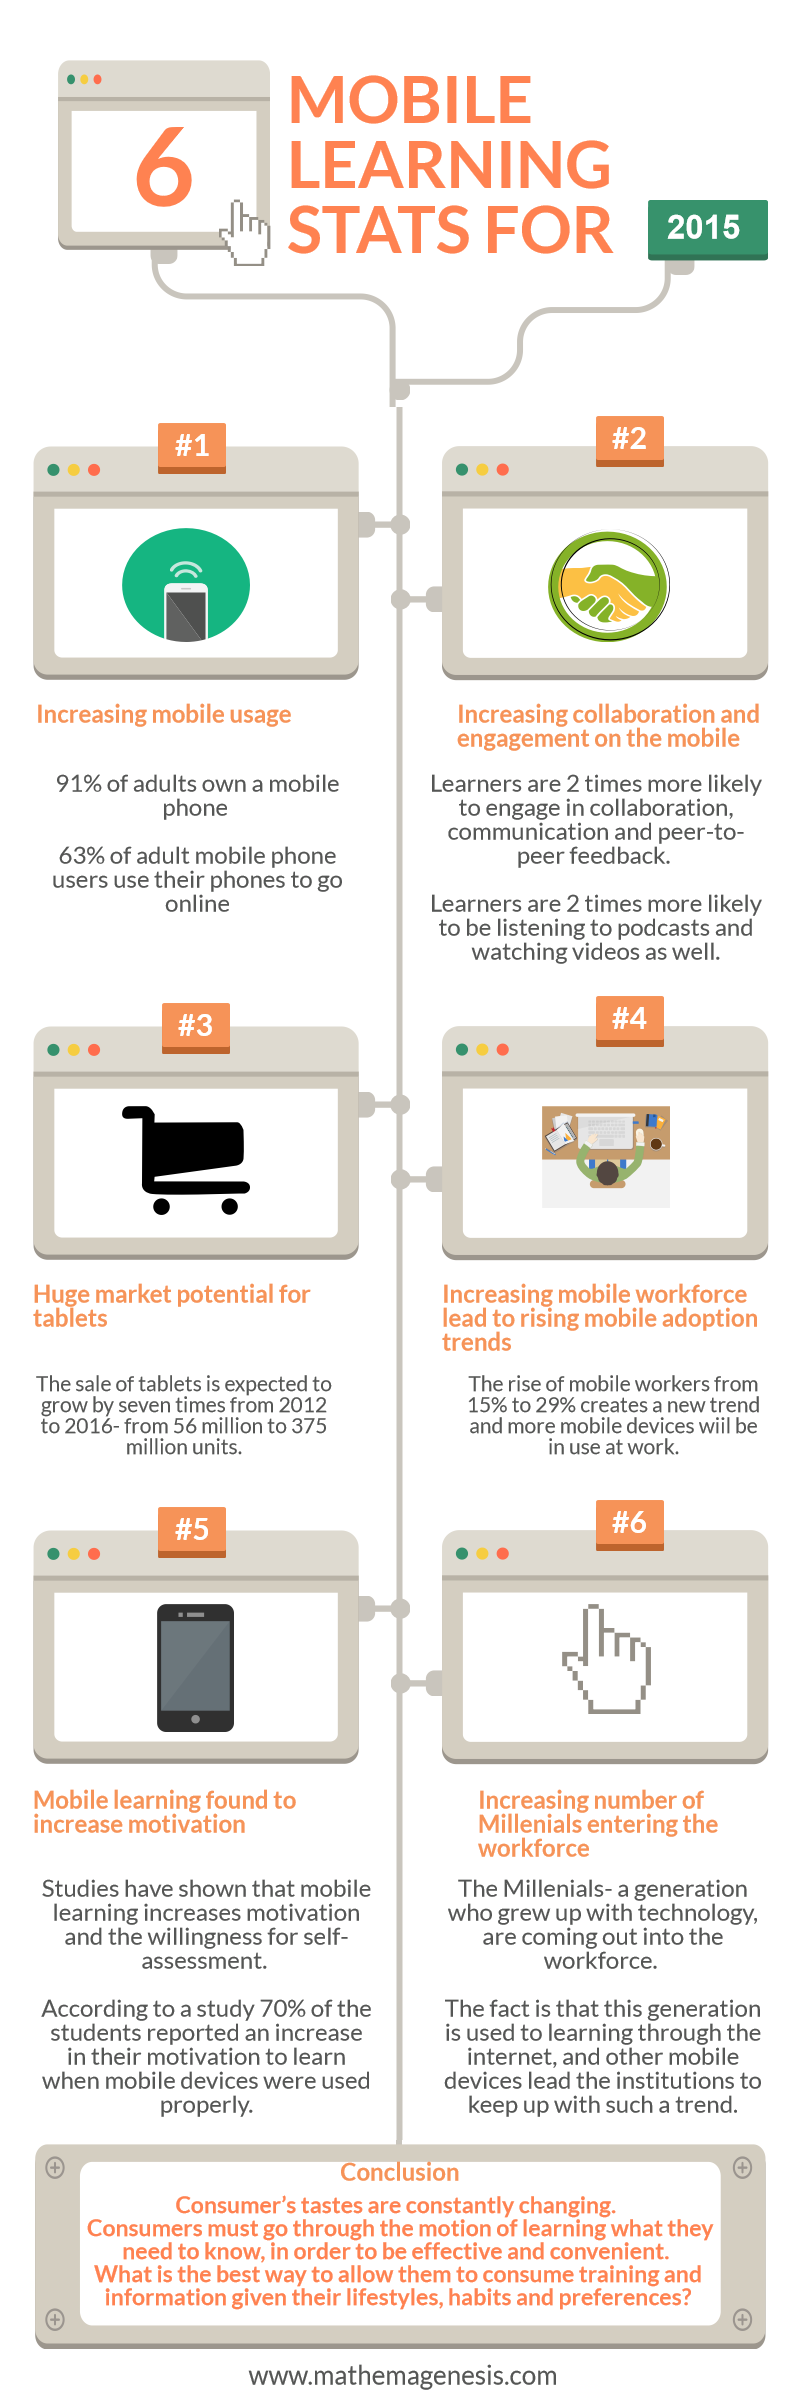 6-mobile-learning-stats-for-2015-mathemagenesis-com